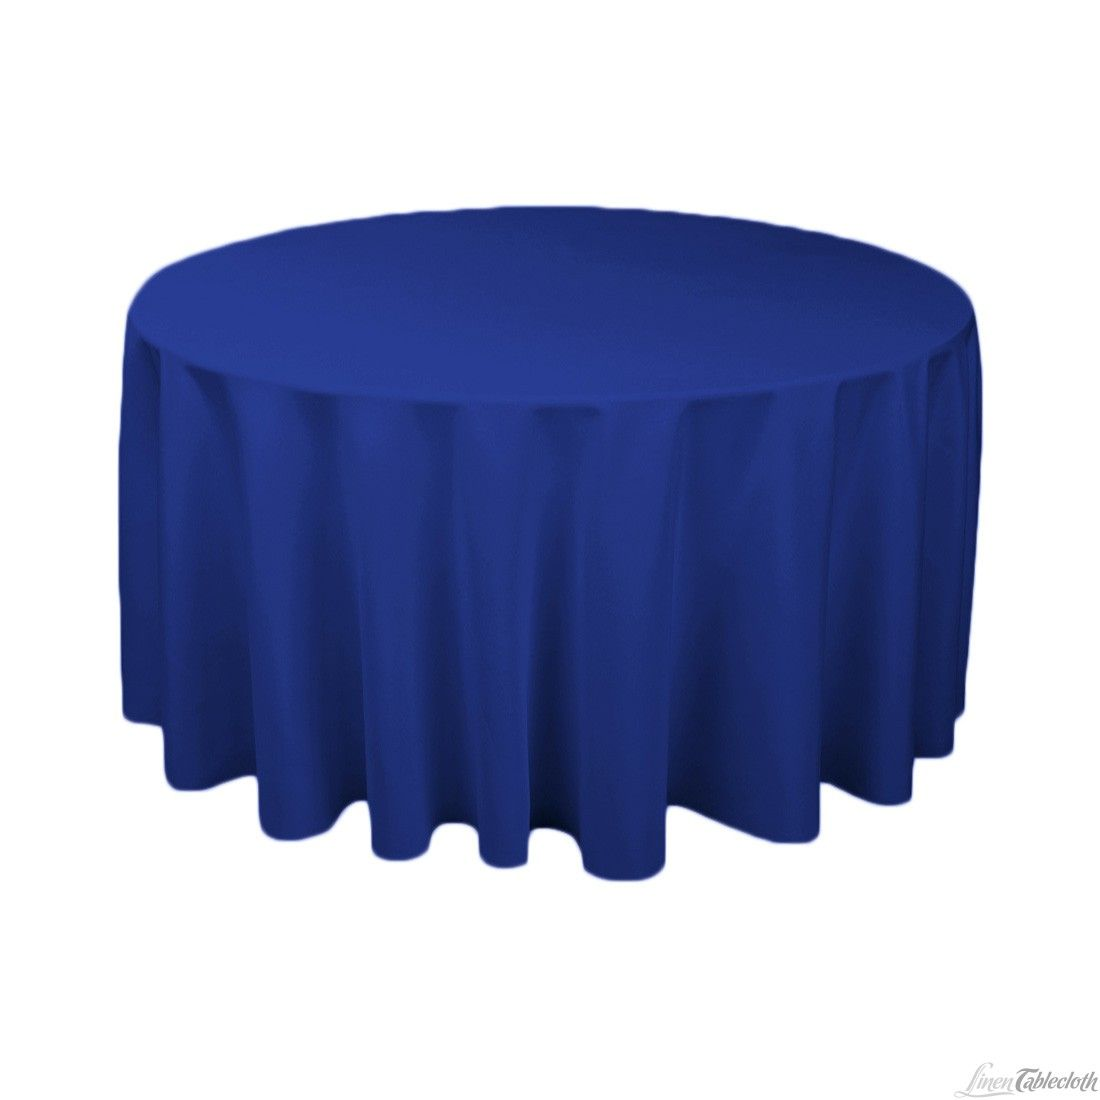 Buy 120 Inch Round Royal Blue Tablecloth For Weddings At LinenTablecloth!  Seamless And Machine Washable